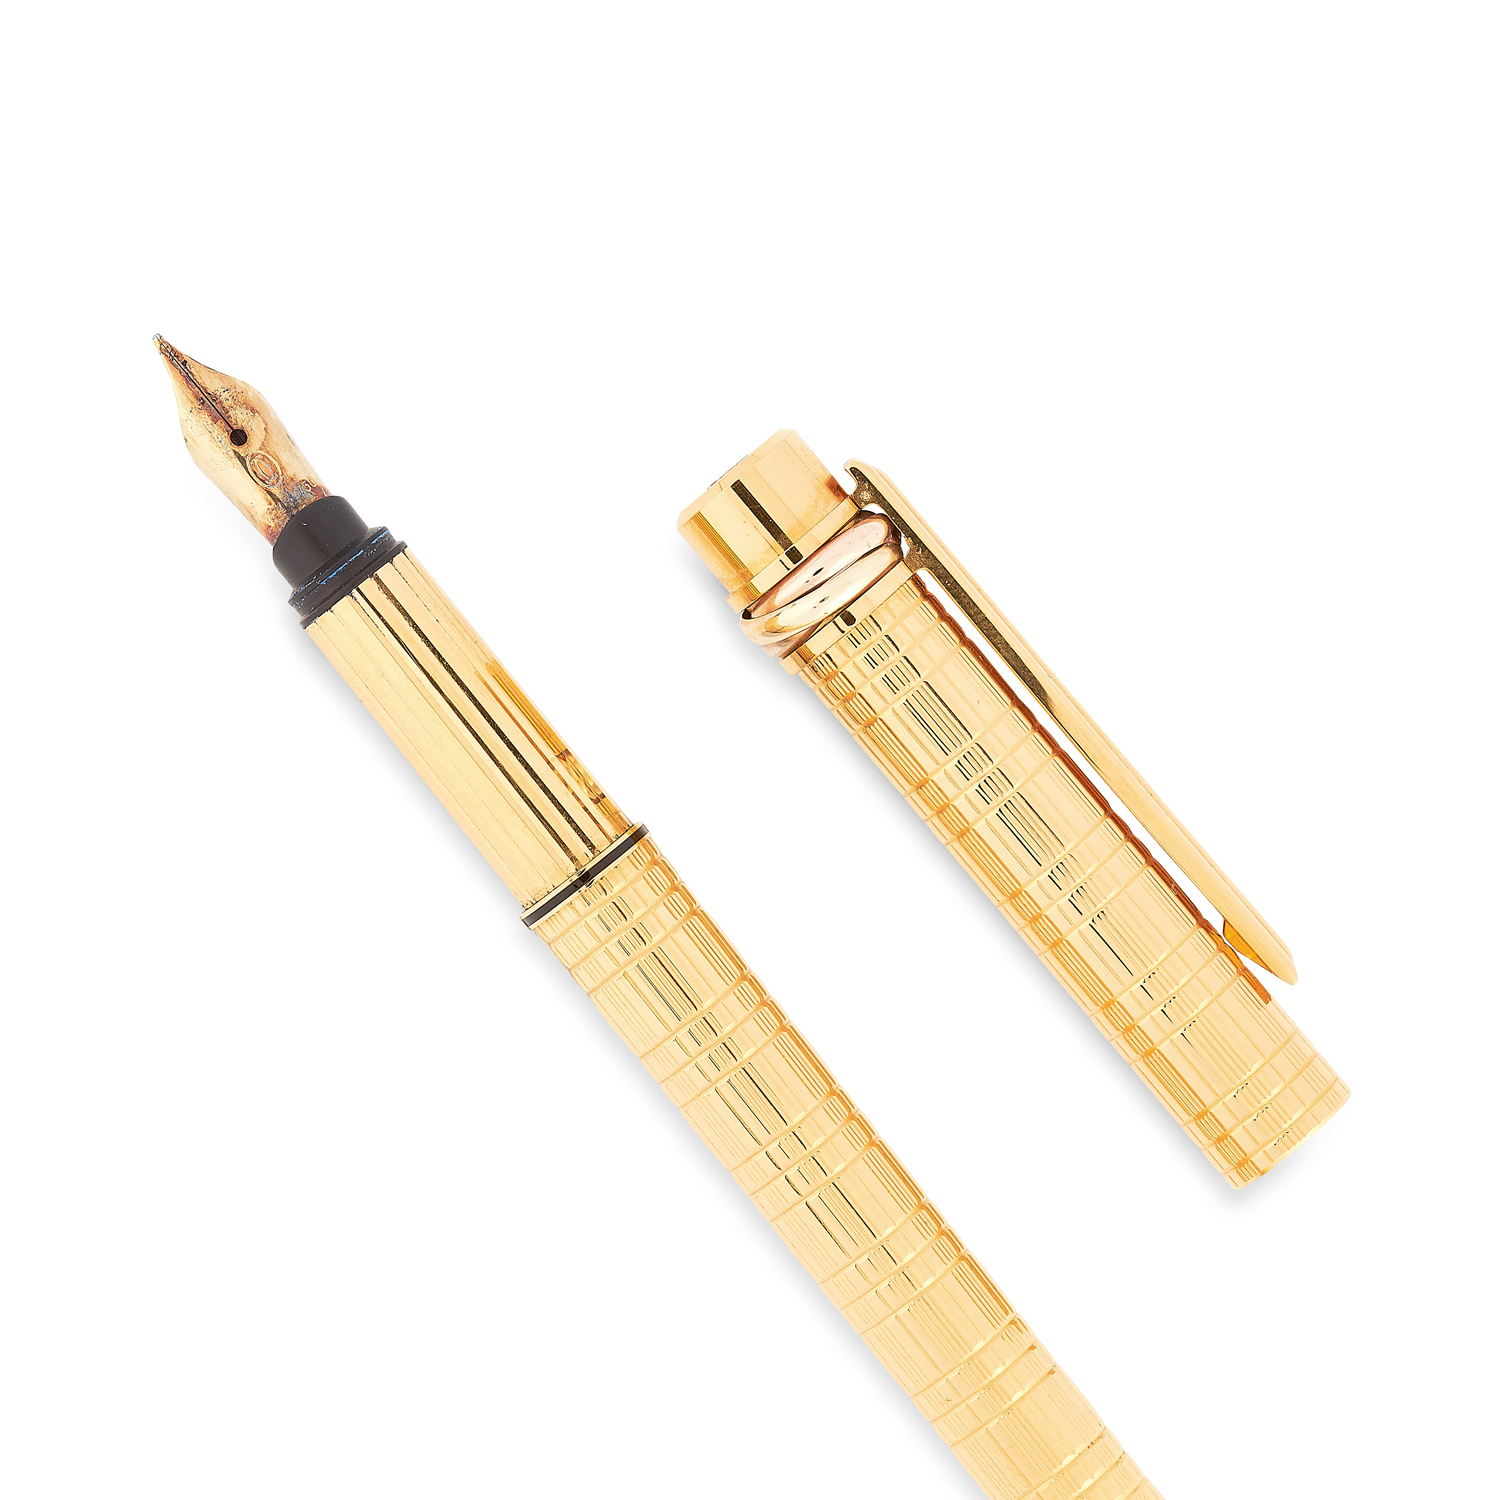 A TRINITY FOUNTAIN PEN, CARTIER in gold plate, in textured gold design, signed Cartier, 13.5cm / 5. - Image 2 of 3